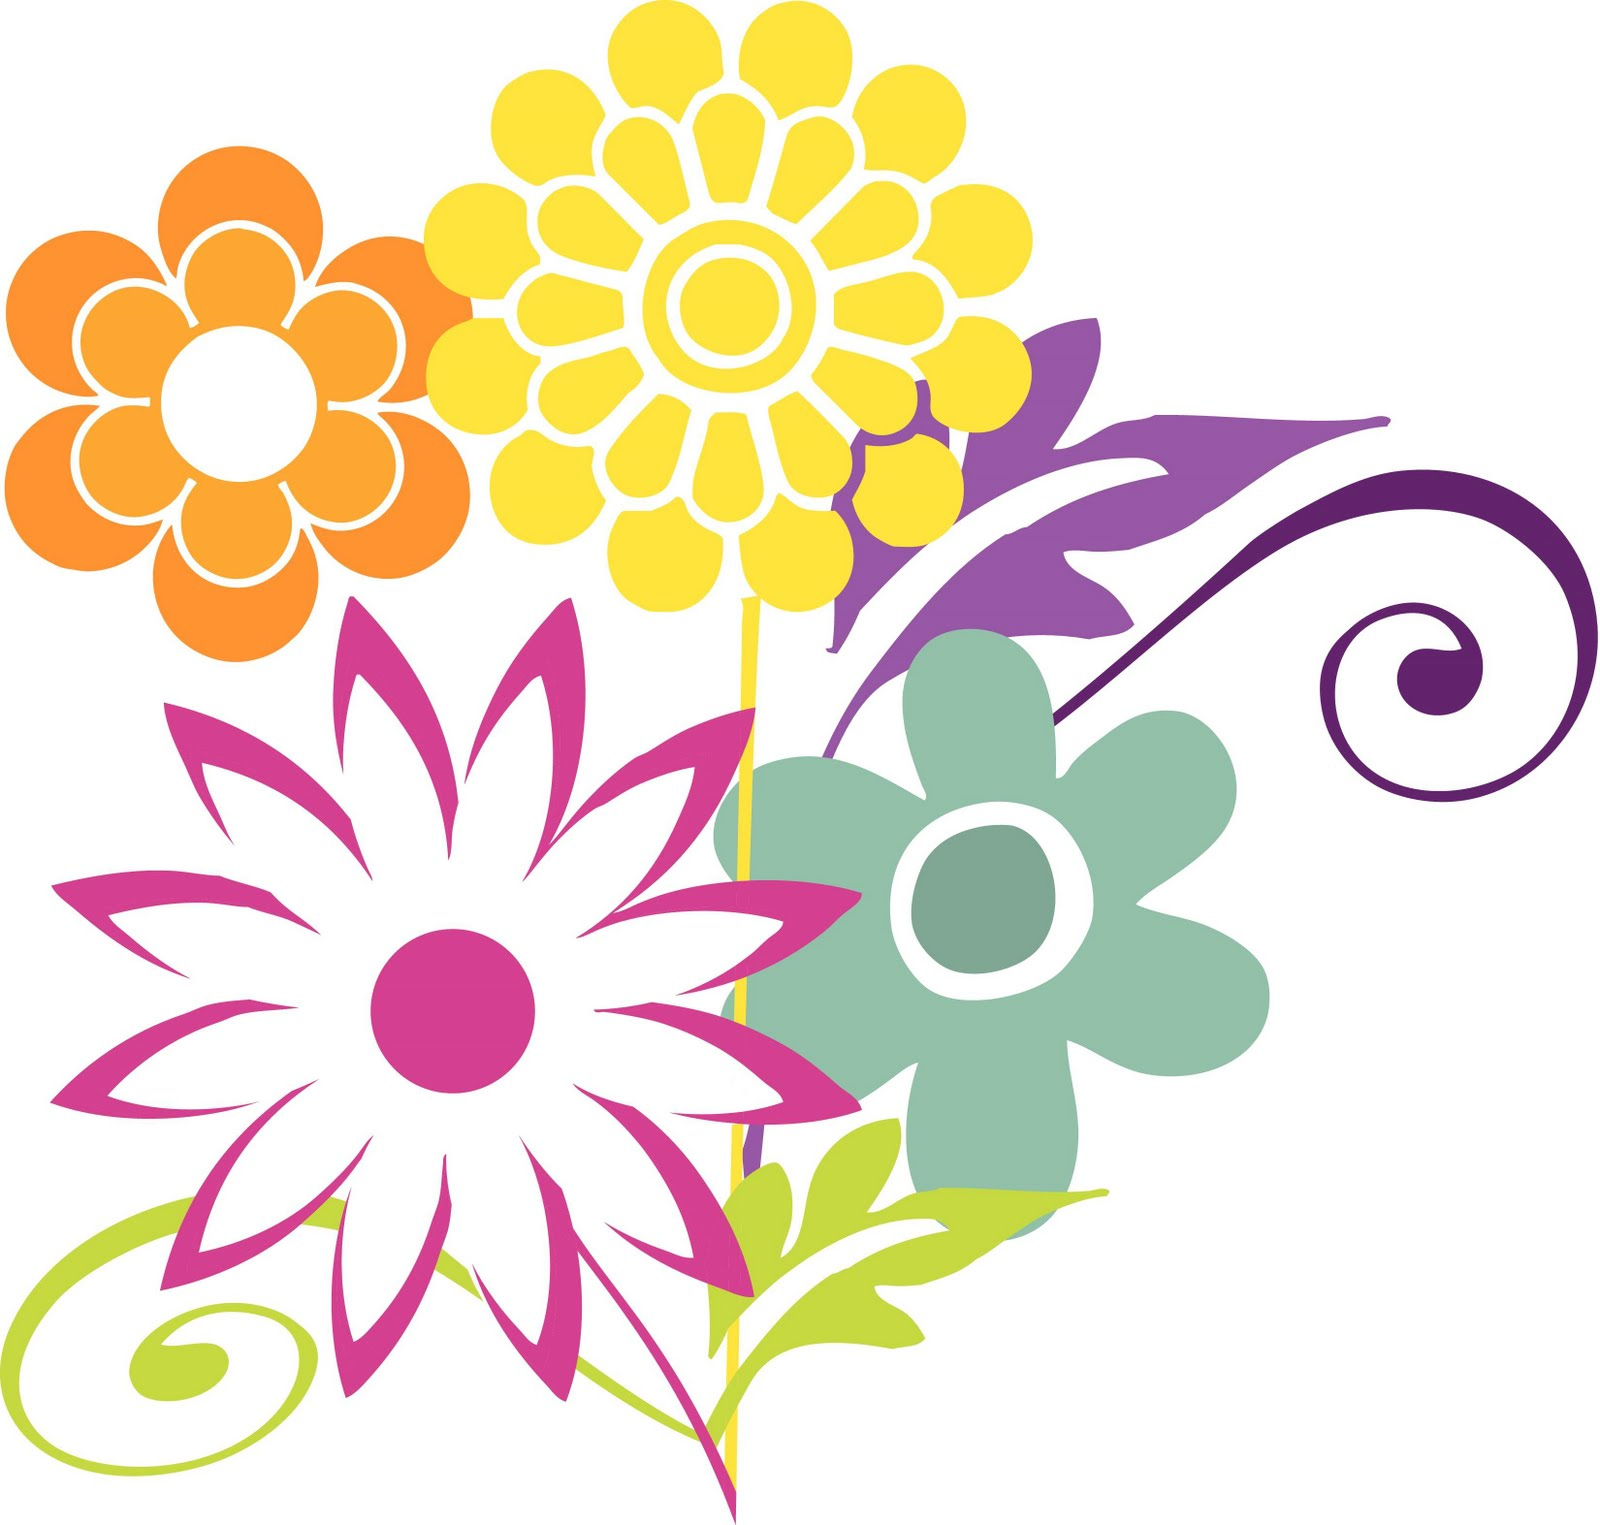 Free Clipart April Flowers Clipart 5-Free clipart april flowers clipart 5-4